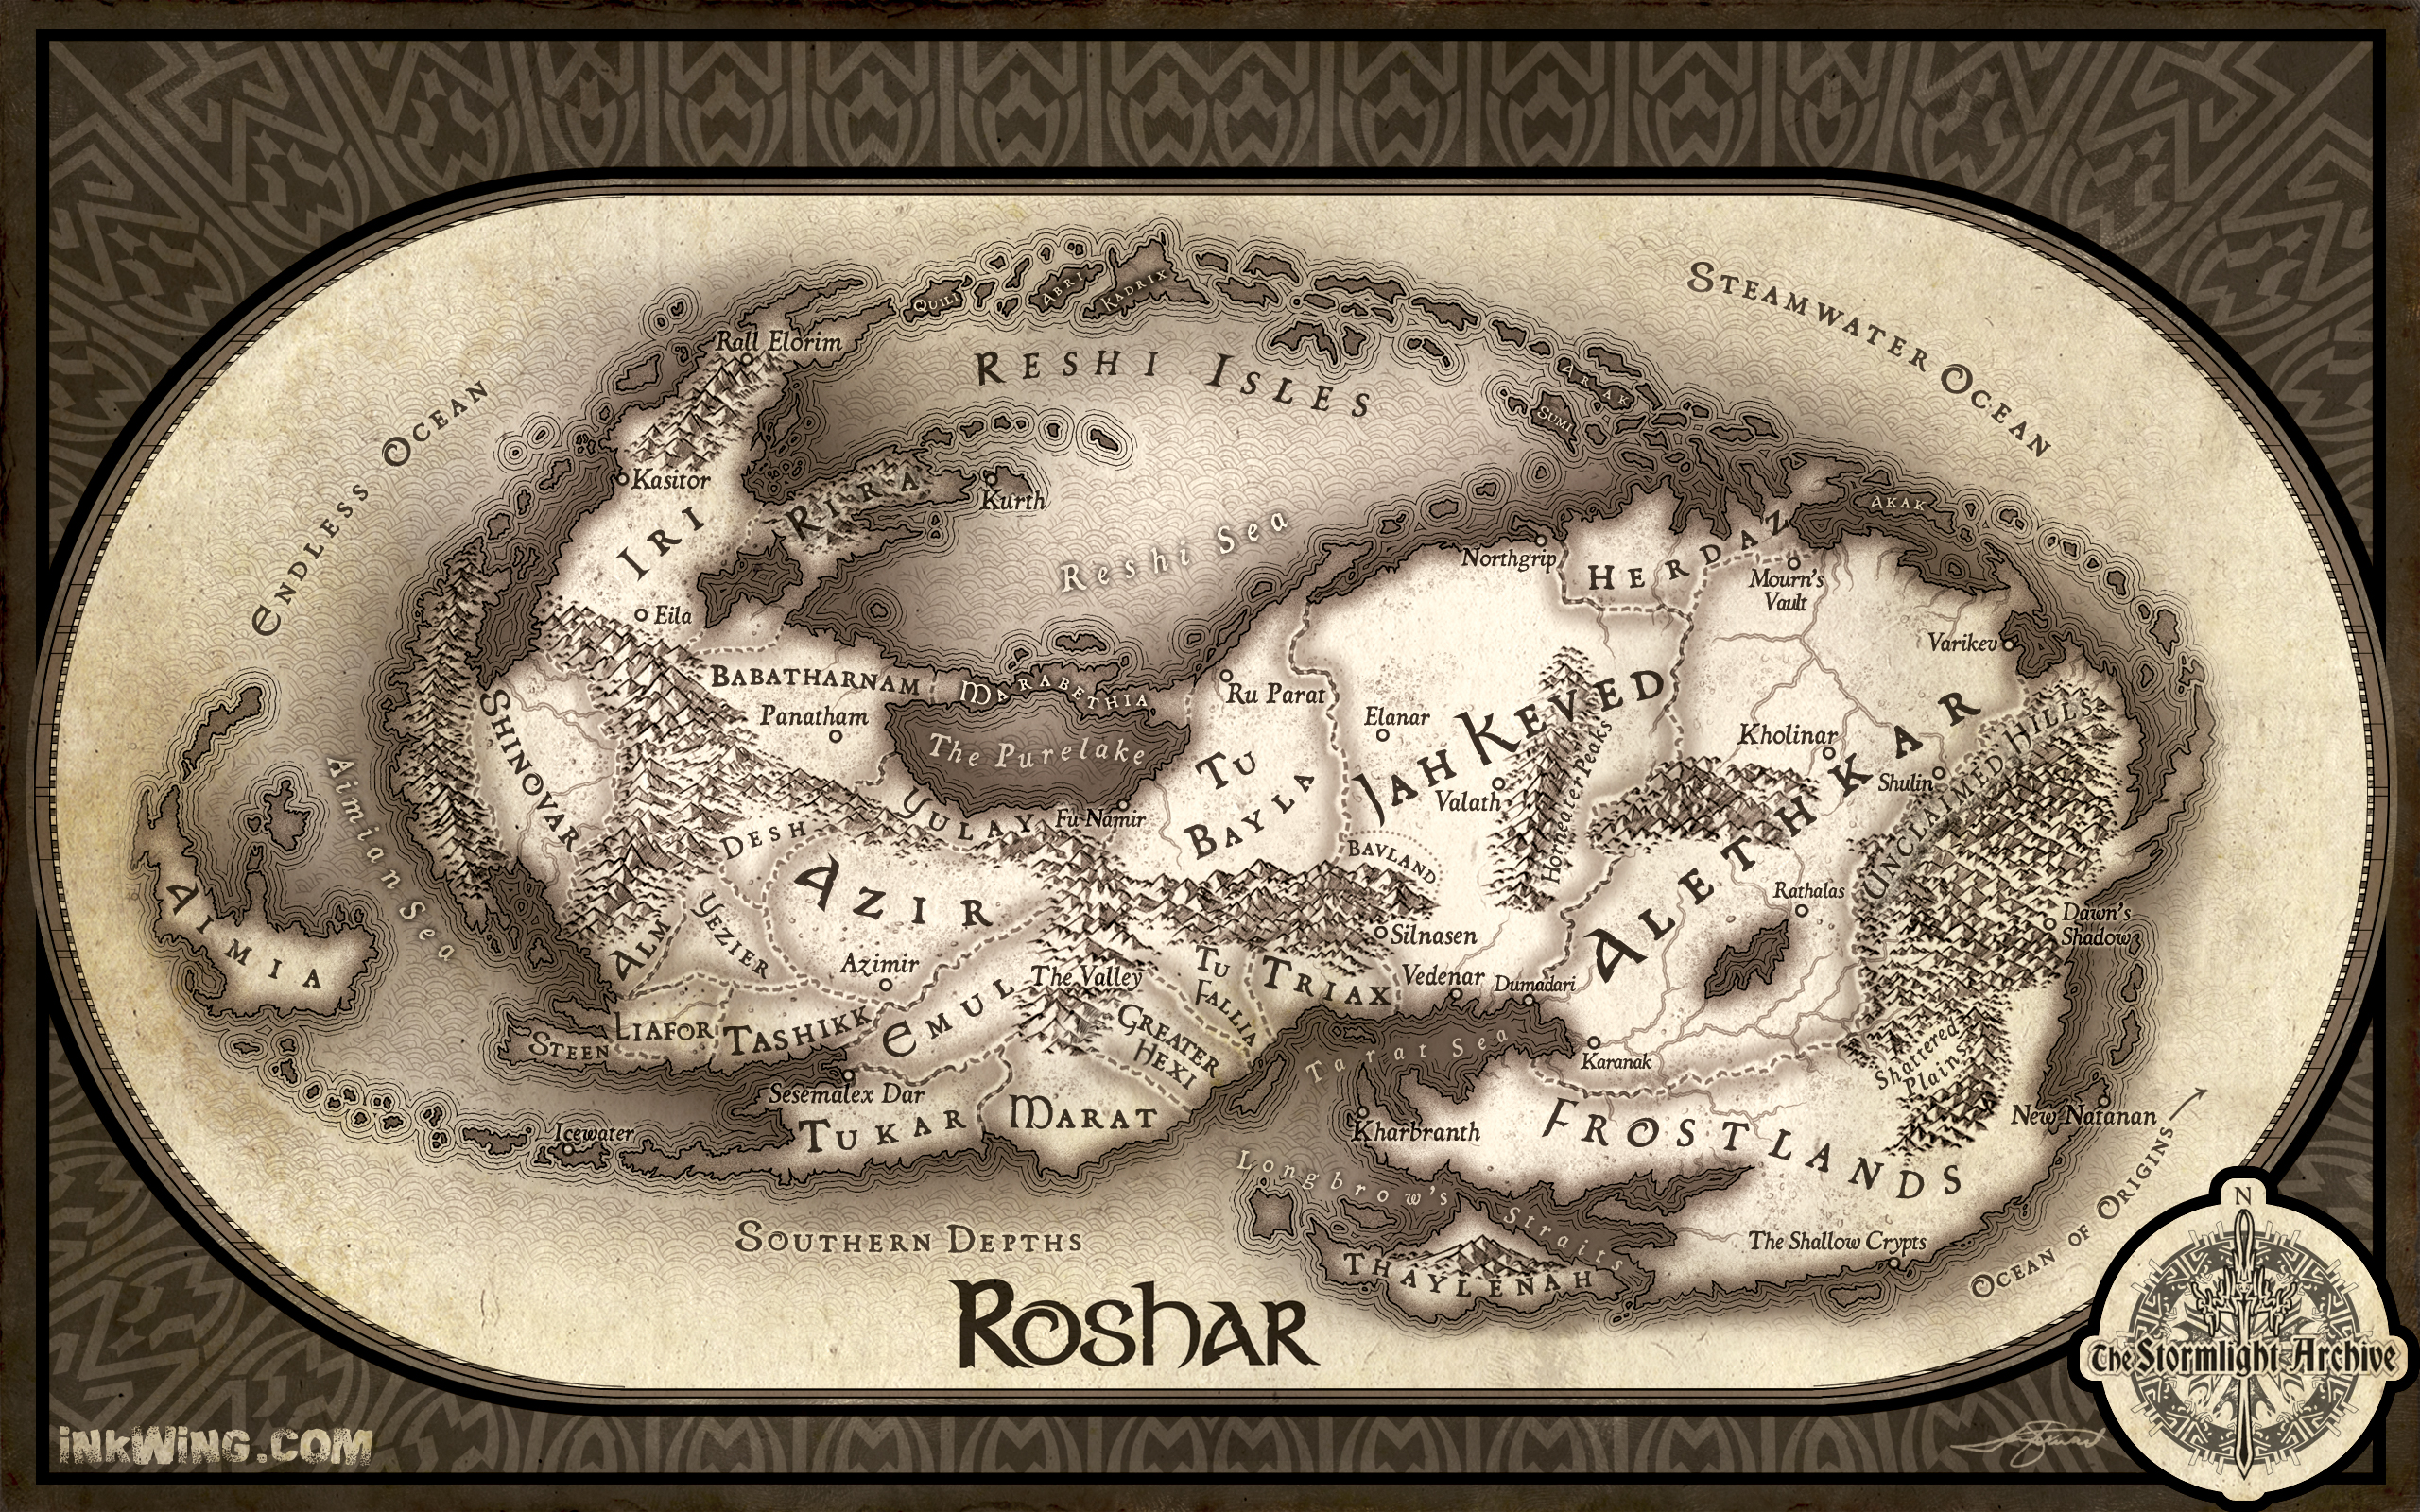 Roshar stormlight archive wiki fandom powered by wikia gumiabroncs Choice Image